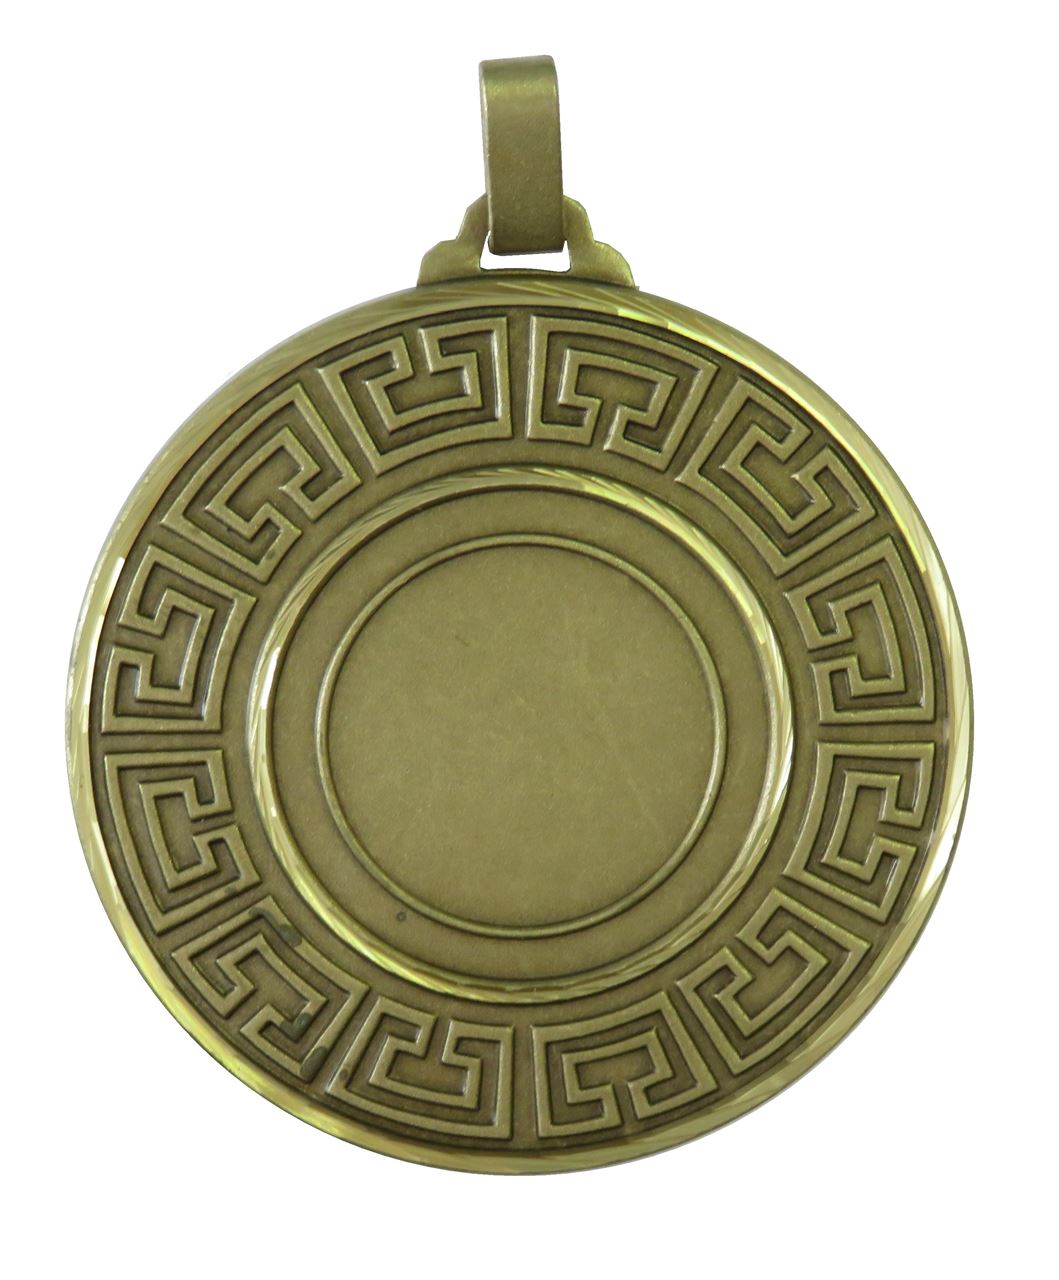 Bronze Faceted Athena Medal (sizes: 60mm) - 5555F